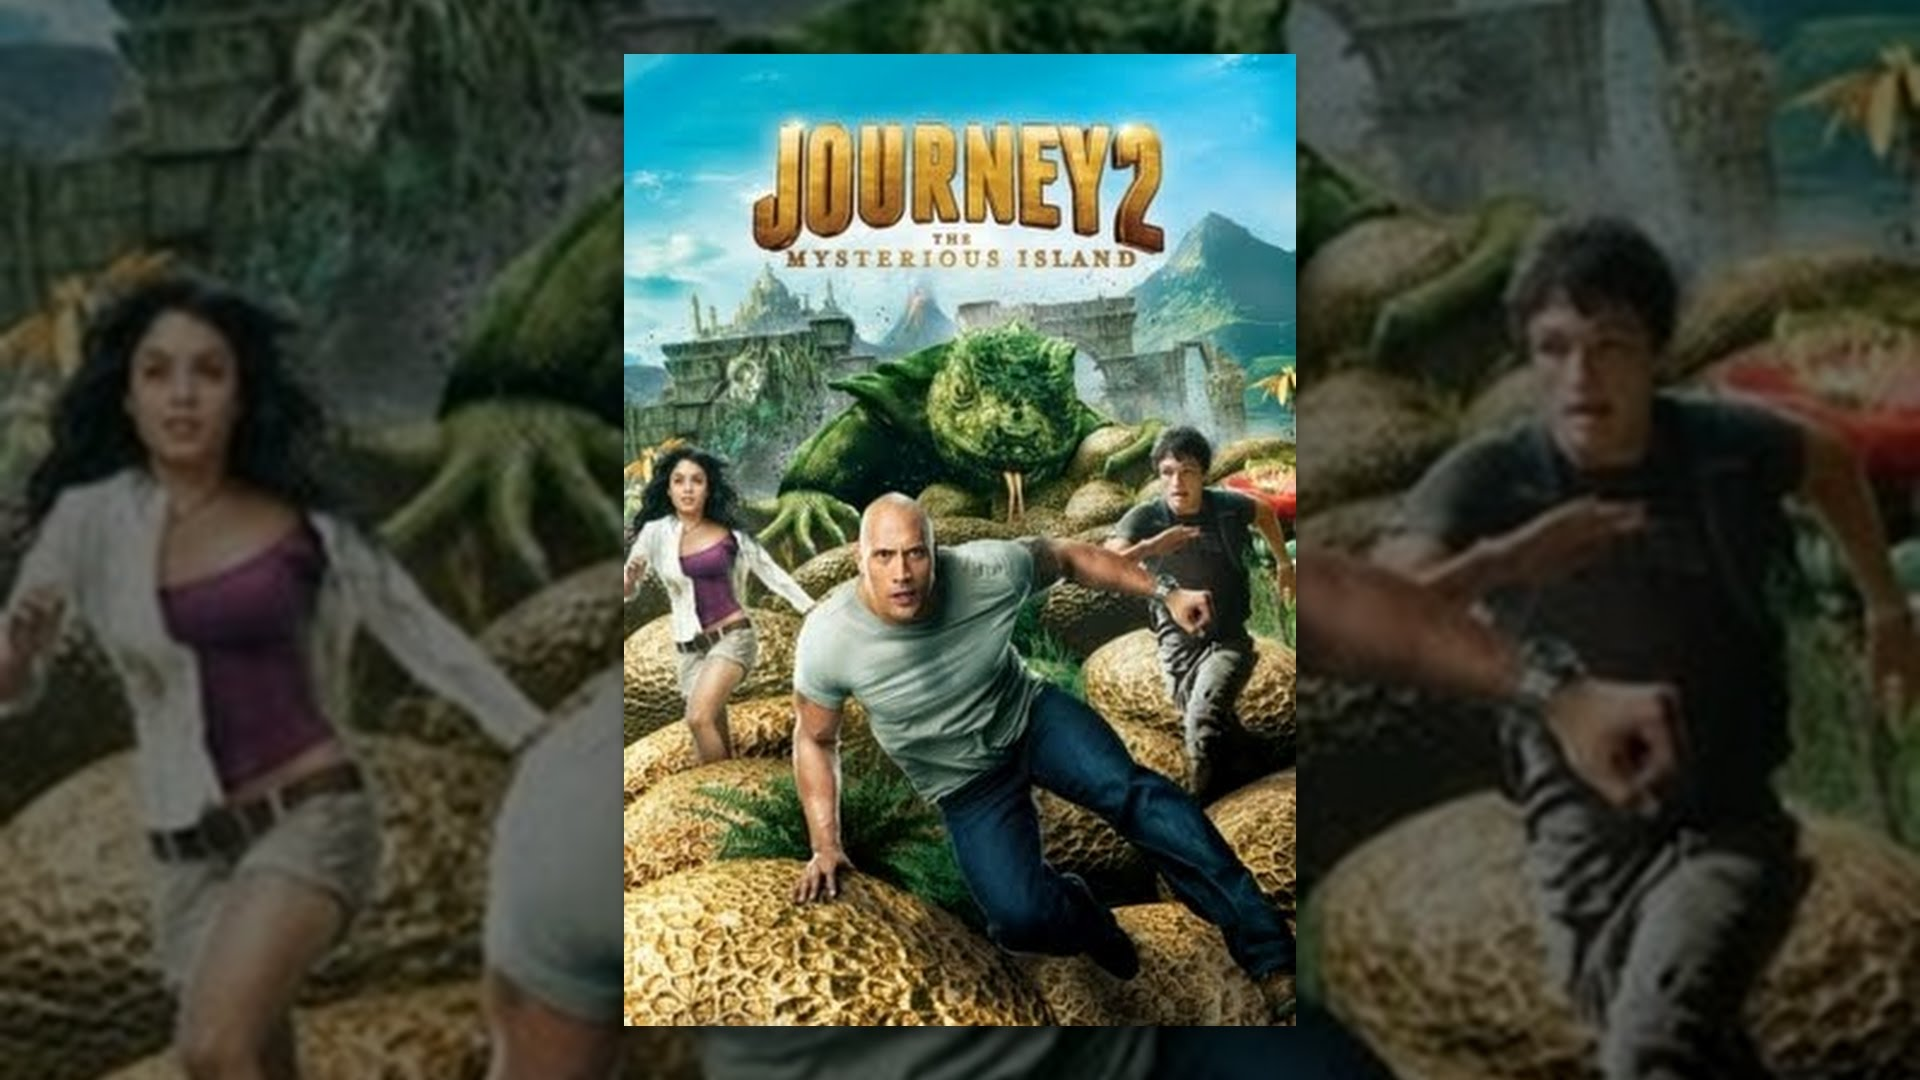 Download Journey 2: The Mysterious Island